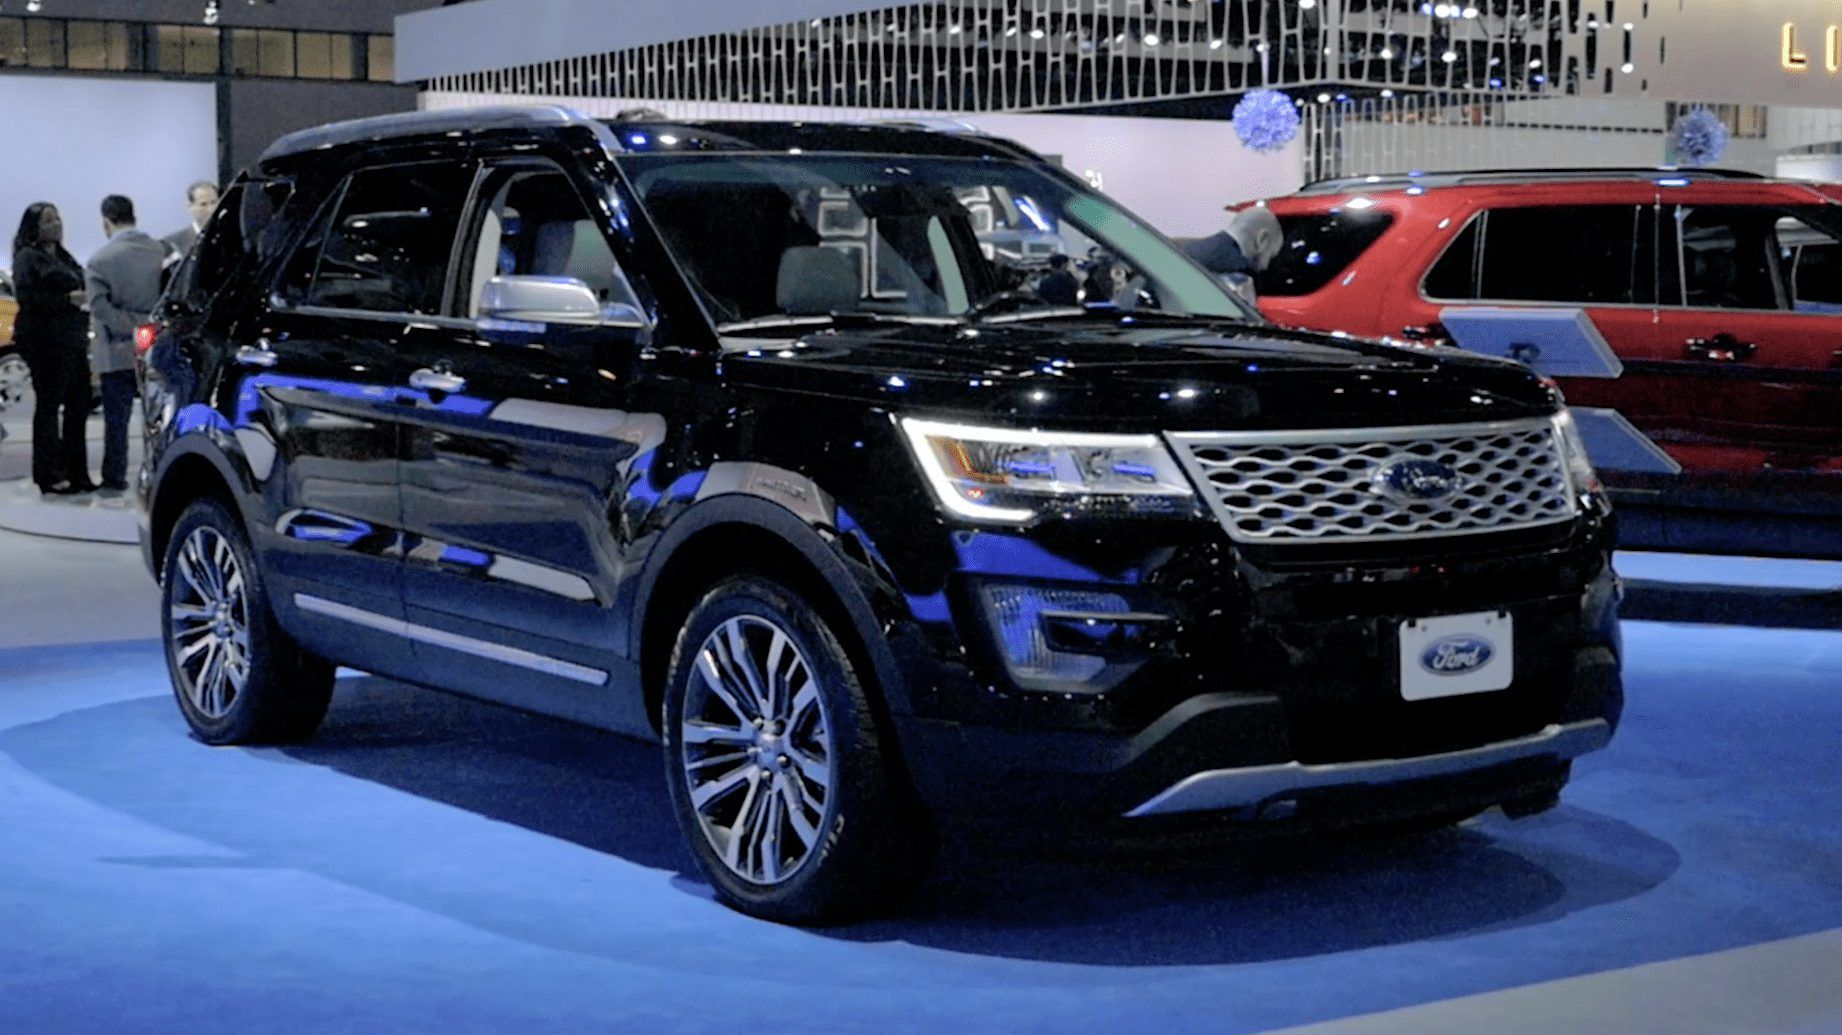 Sneak A Peek Into The Brand New 2020 Ford Explorer 2020 Ford Explorer Ford Explorer Ford